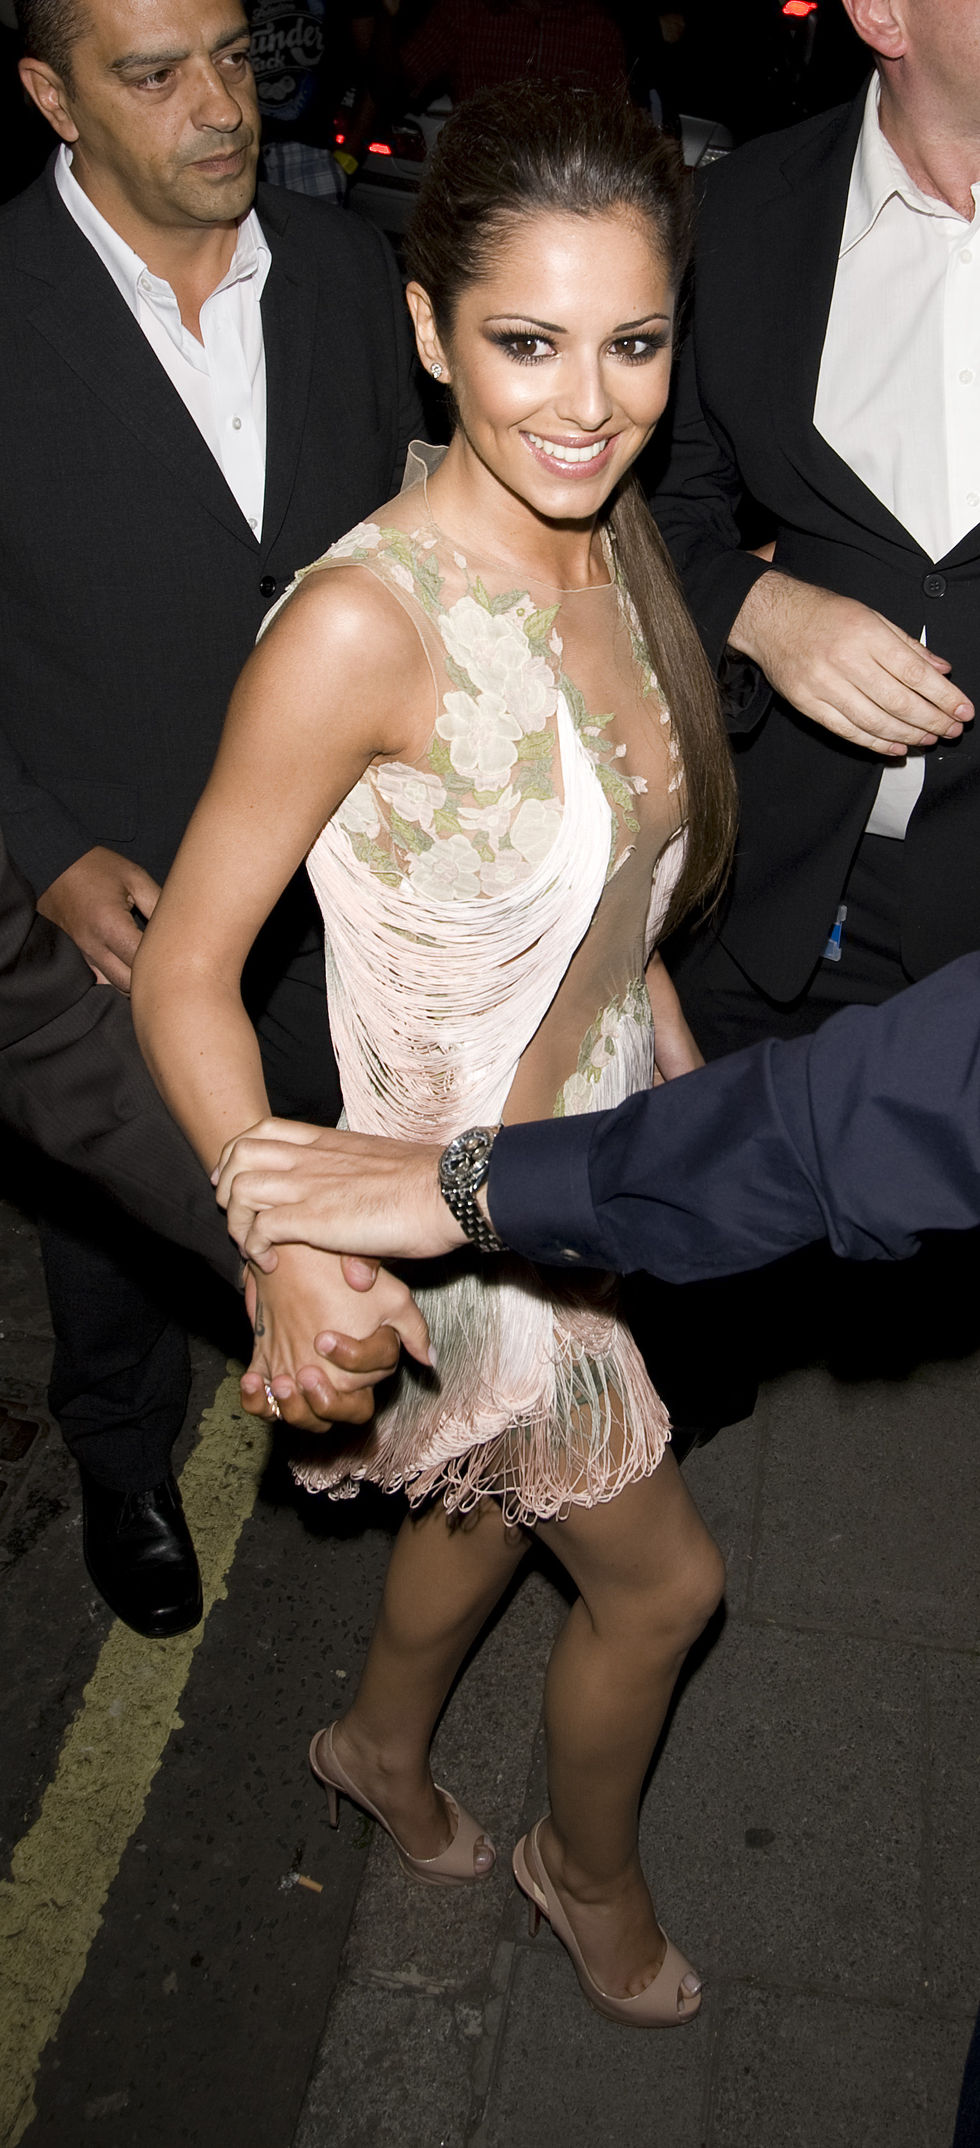 cheryl-cole-candids-at-mayfair-hotel-in-london-01